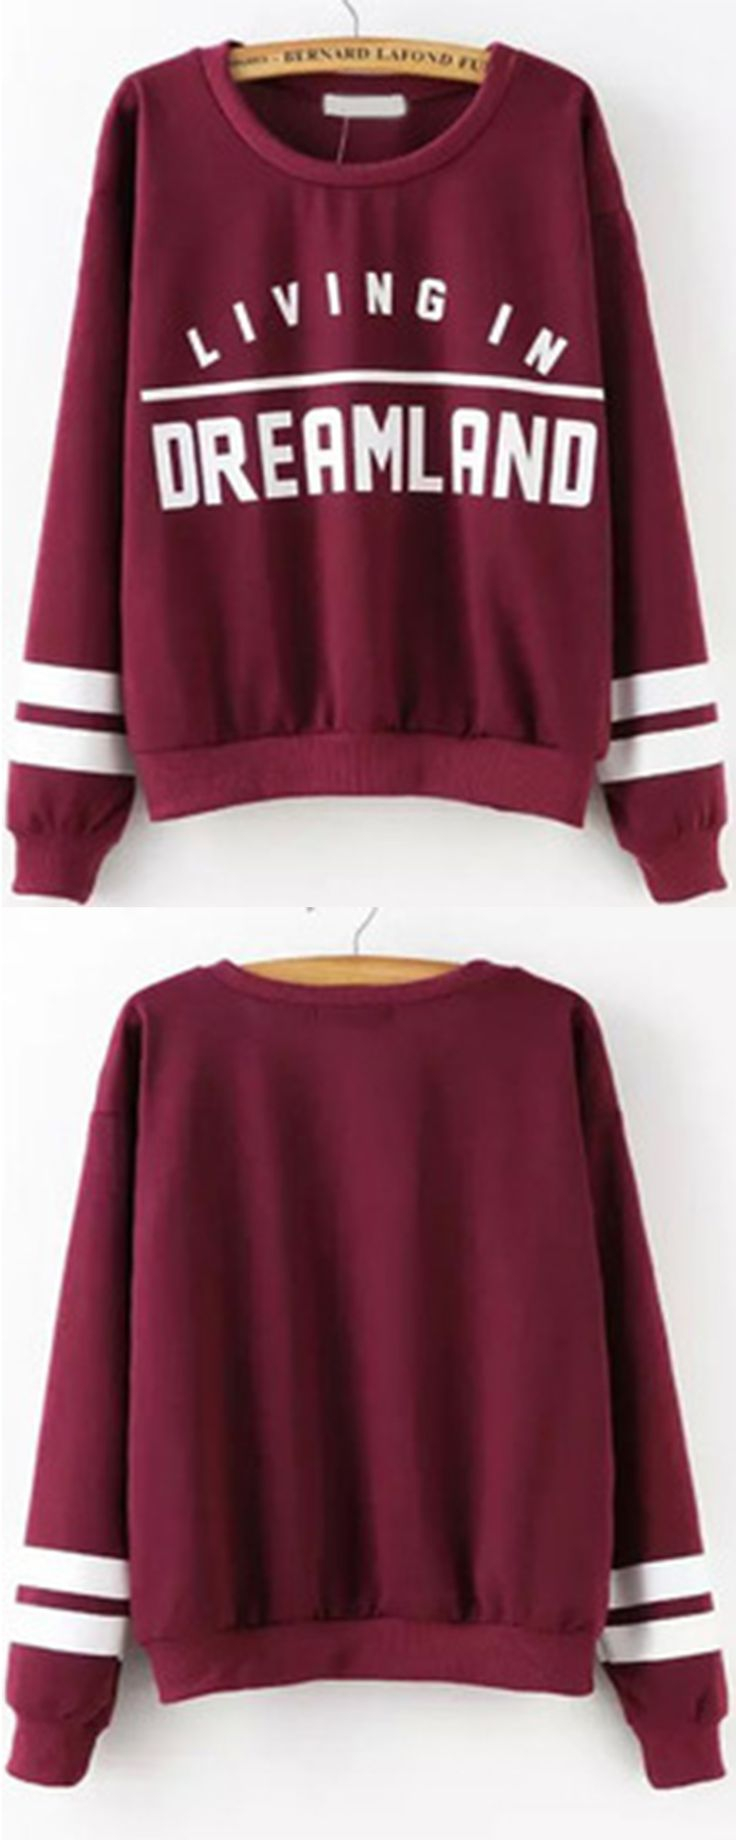 The wine red sweatshirts are kind of like my uniform all Fall. This is my too tired to function sweatshirt jumper cool fashion girls sizing women sweater funny cute teens dope teenagers cool clothing.